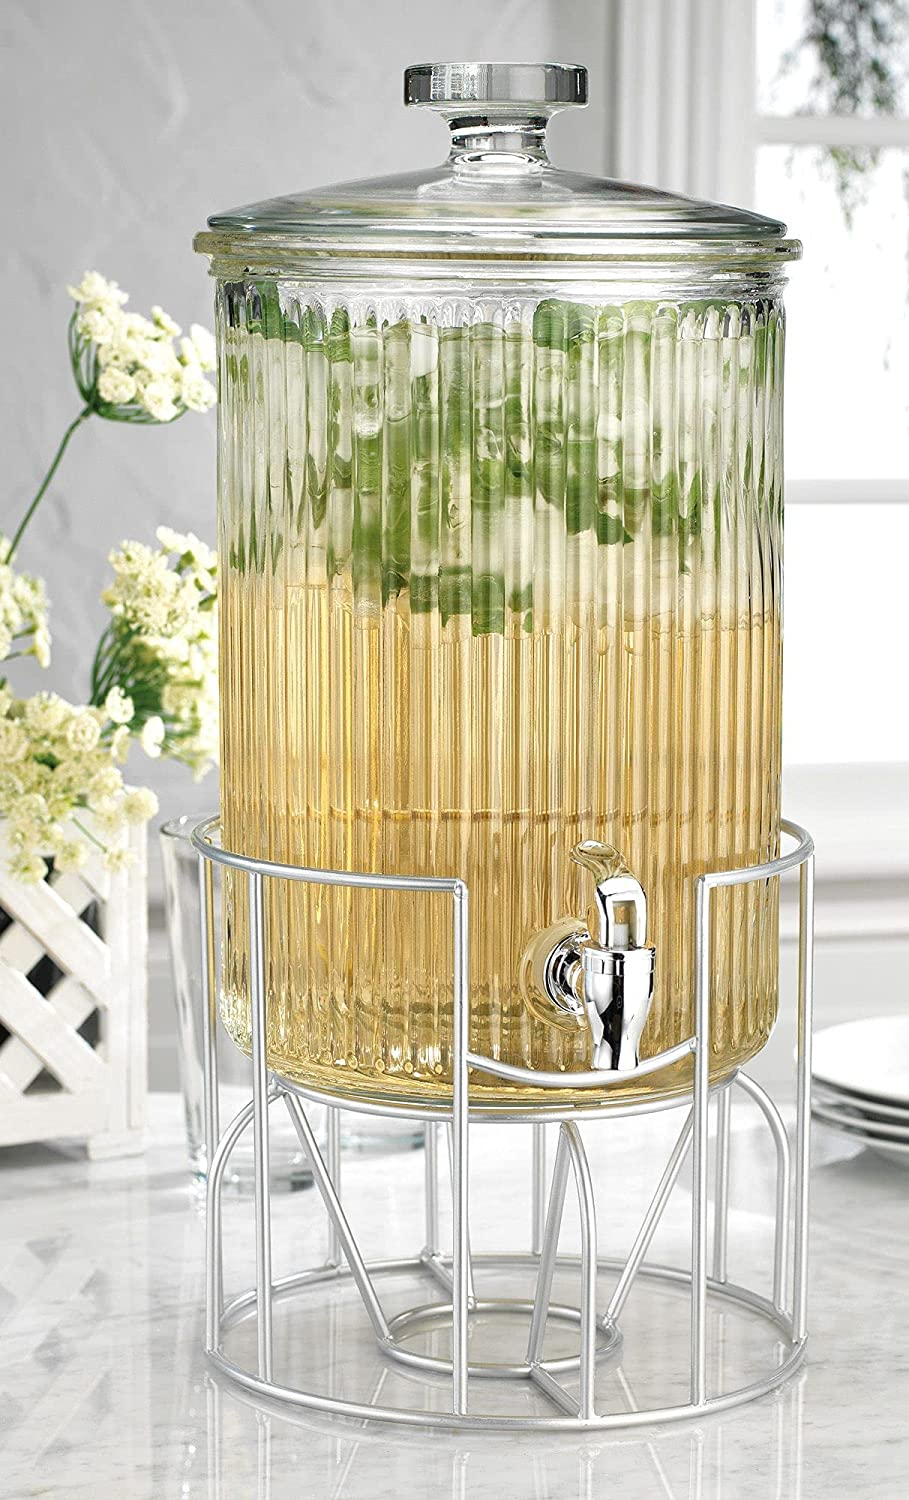 Modern Ribbed 2 Gallon Ice Cold Clear Glass Beverage Drink Dispenser With Lid & Metal Stand Wide Mouth -For Easy Filling- For Outdoor, Party & Daily Use